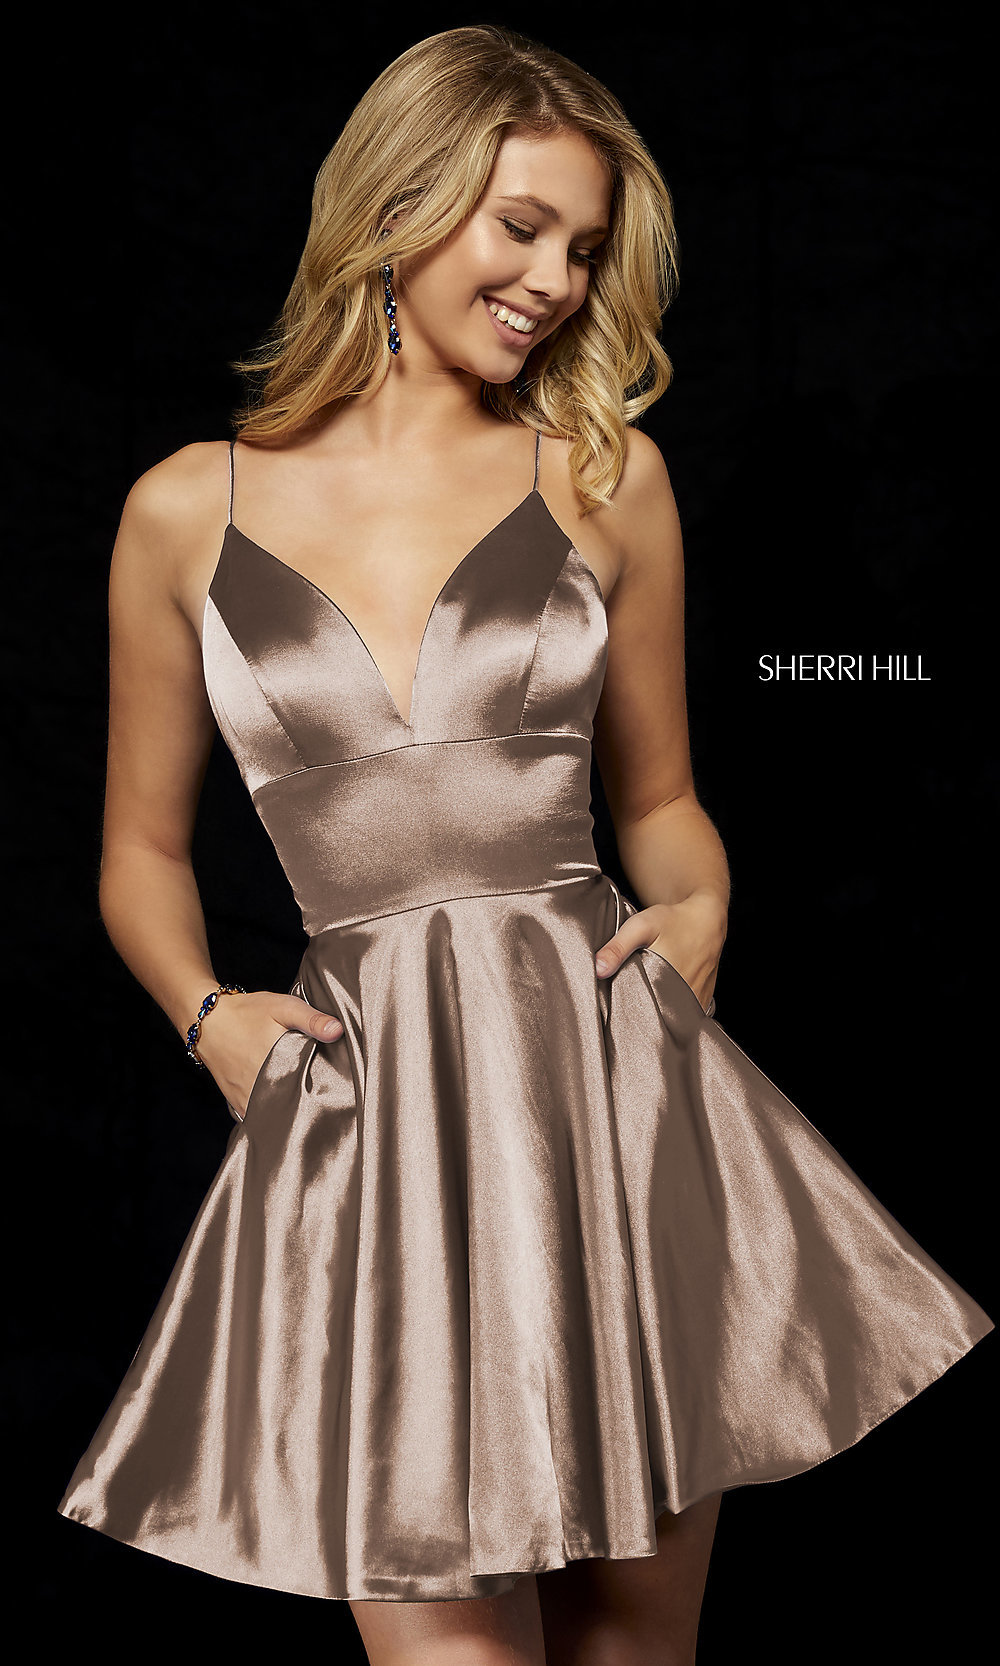 d153111d84 ... mocha fit-and-flare Sherri Hill hoco dress. Tap to expand